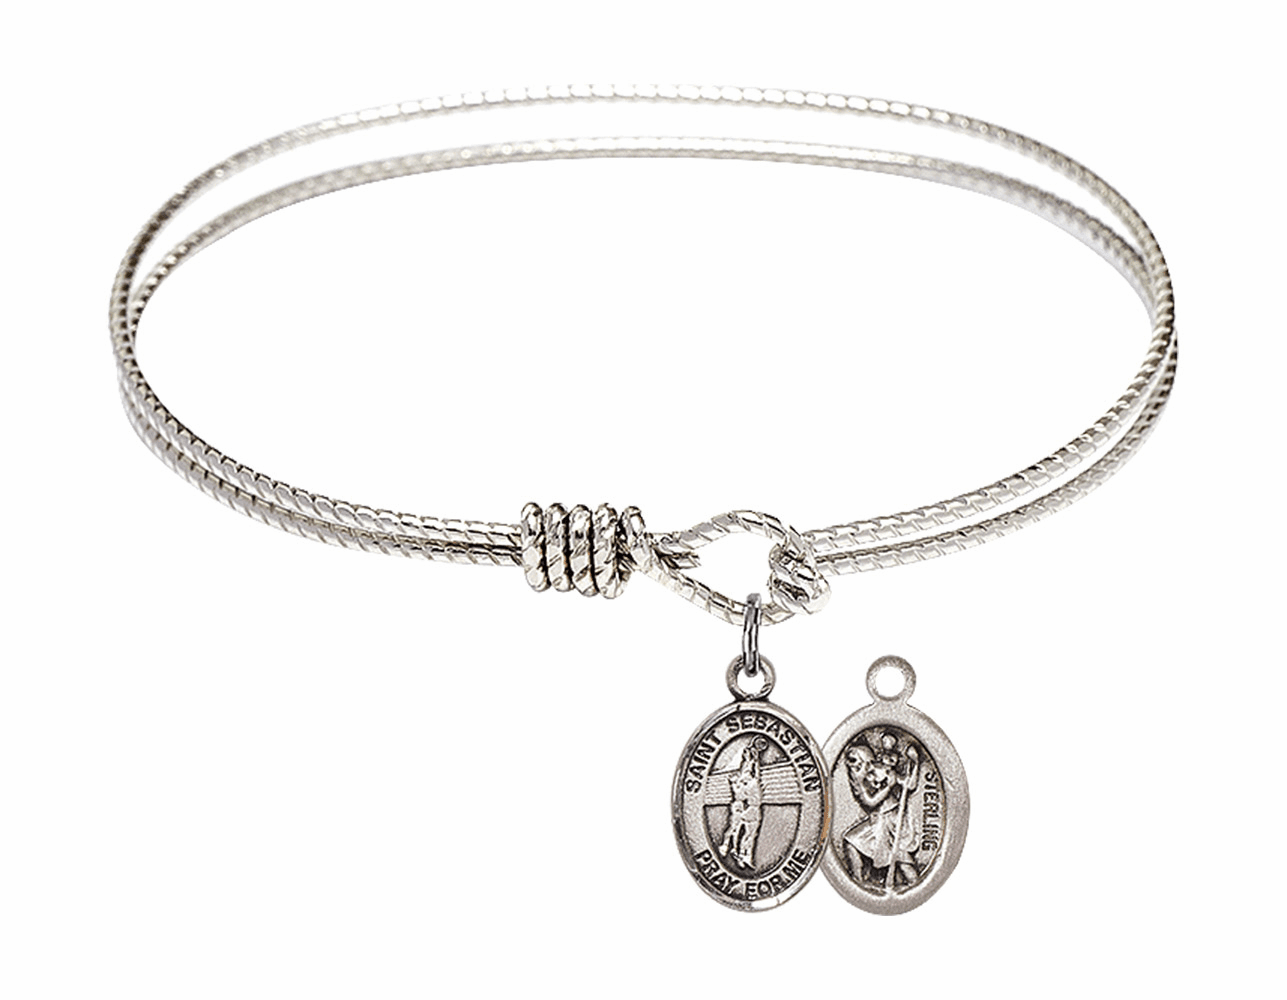 Twist Round Eye Hook St Sebastian Volleyball Bangle Charm Bracelet by Bliss